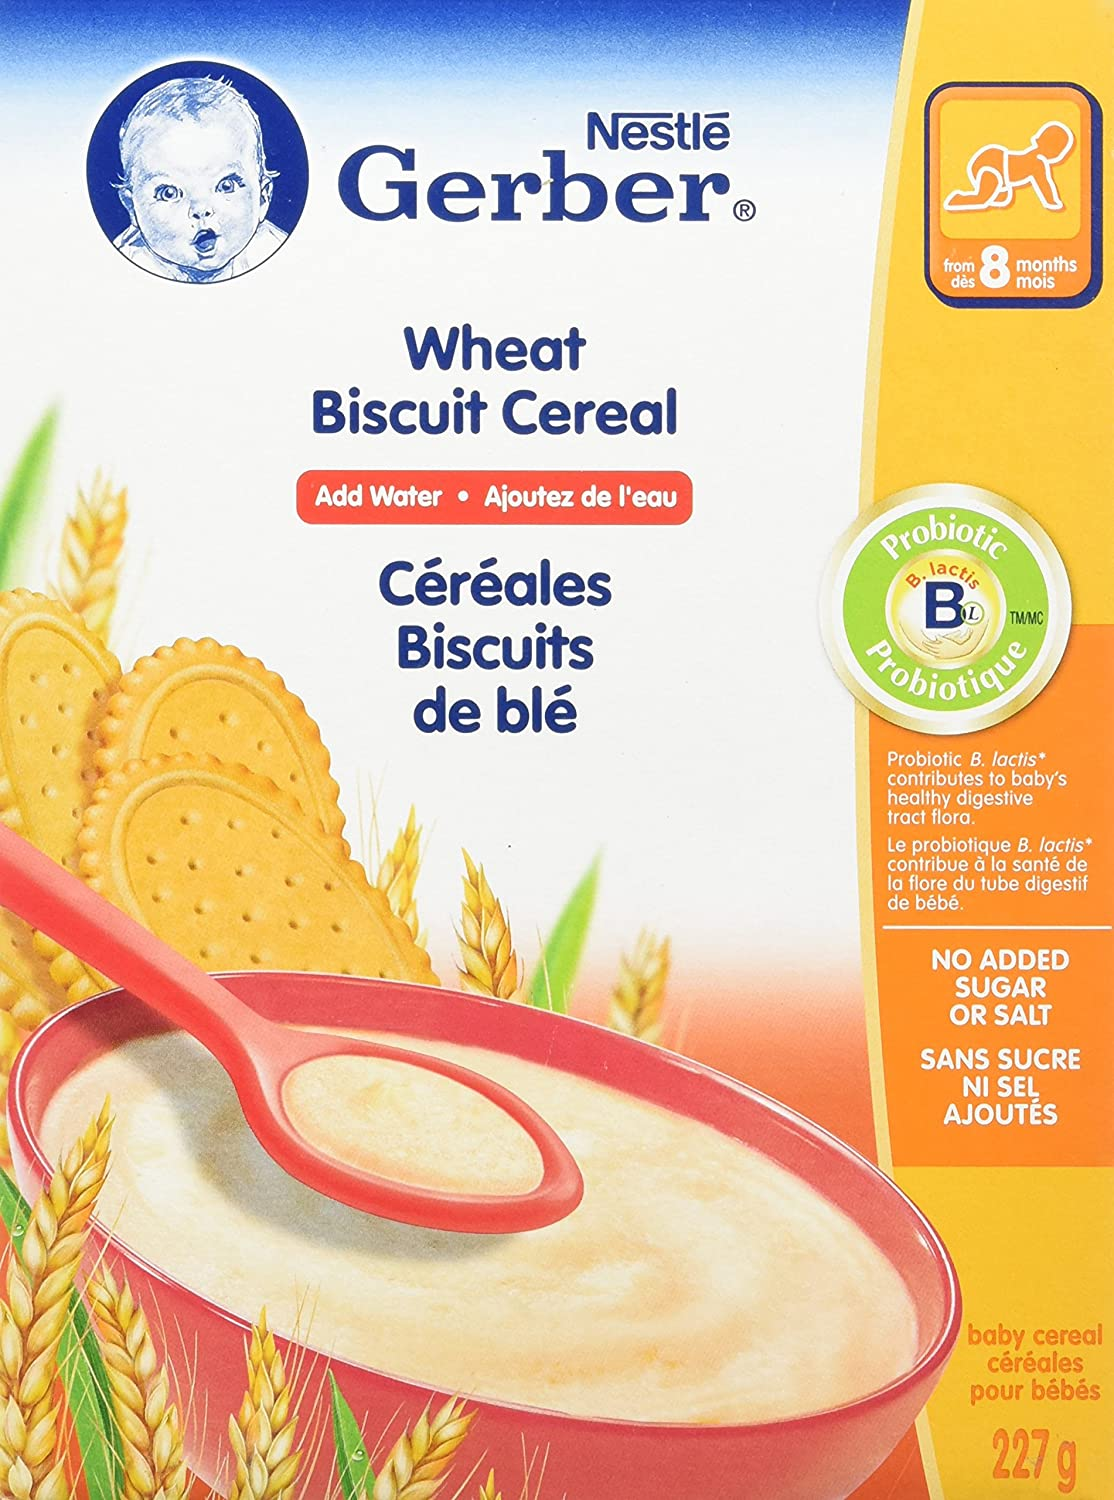 Gerber Gerber Wheat Biscuit Cereal Co Nestle Canada Inc